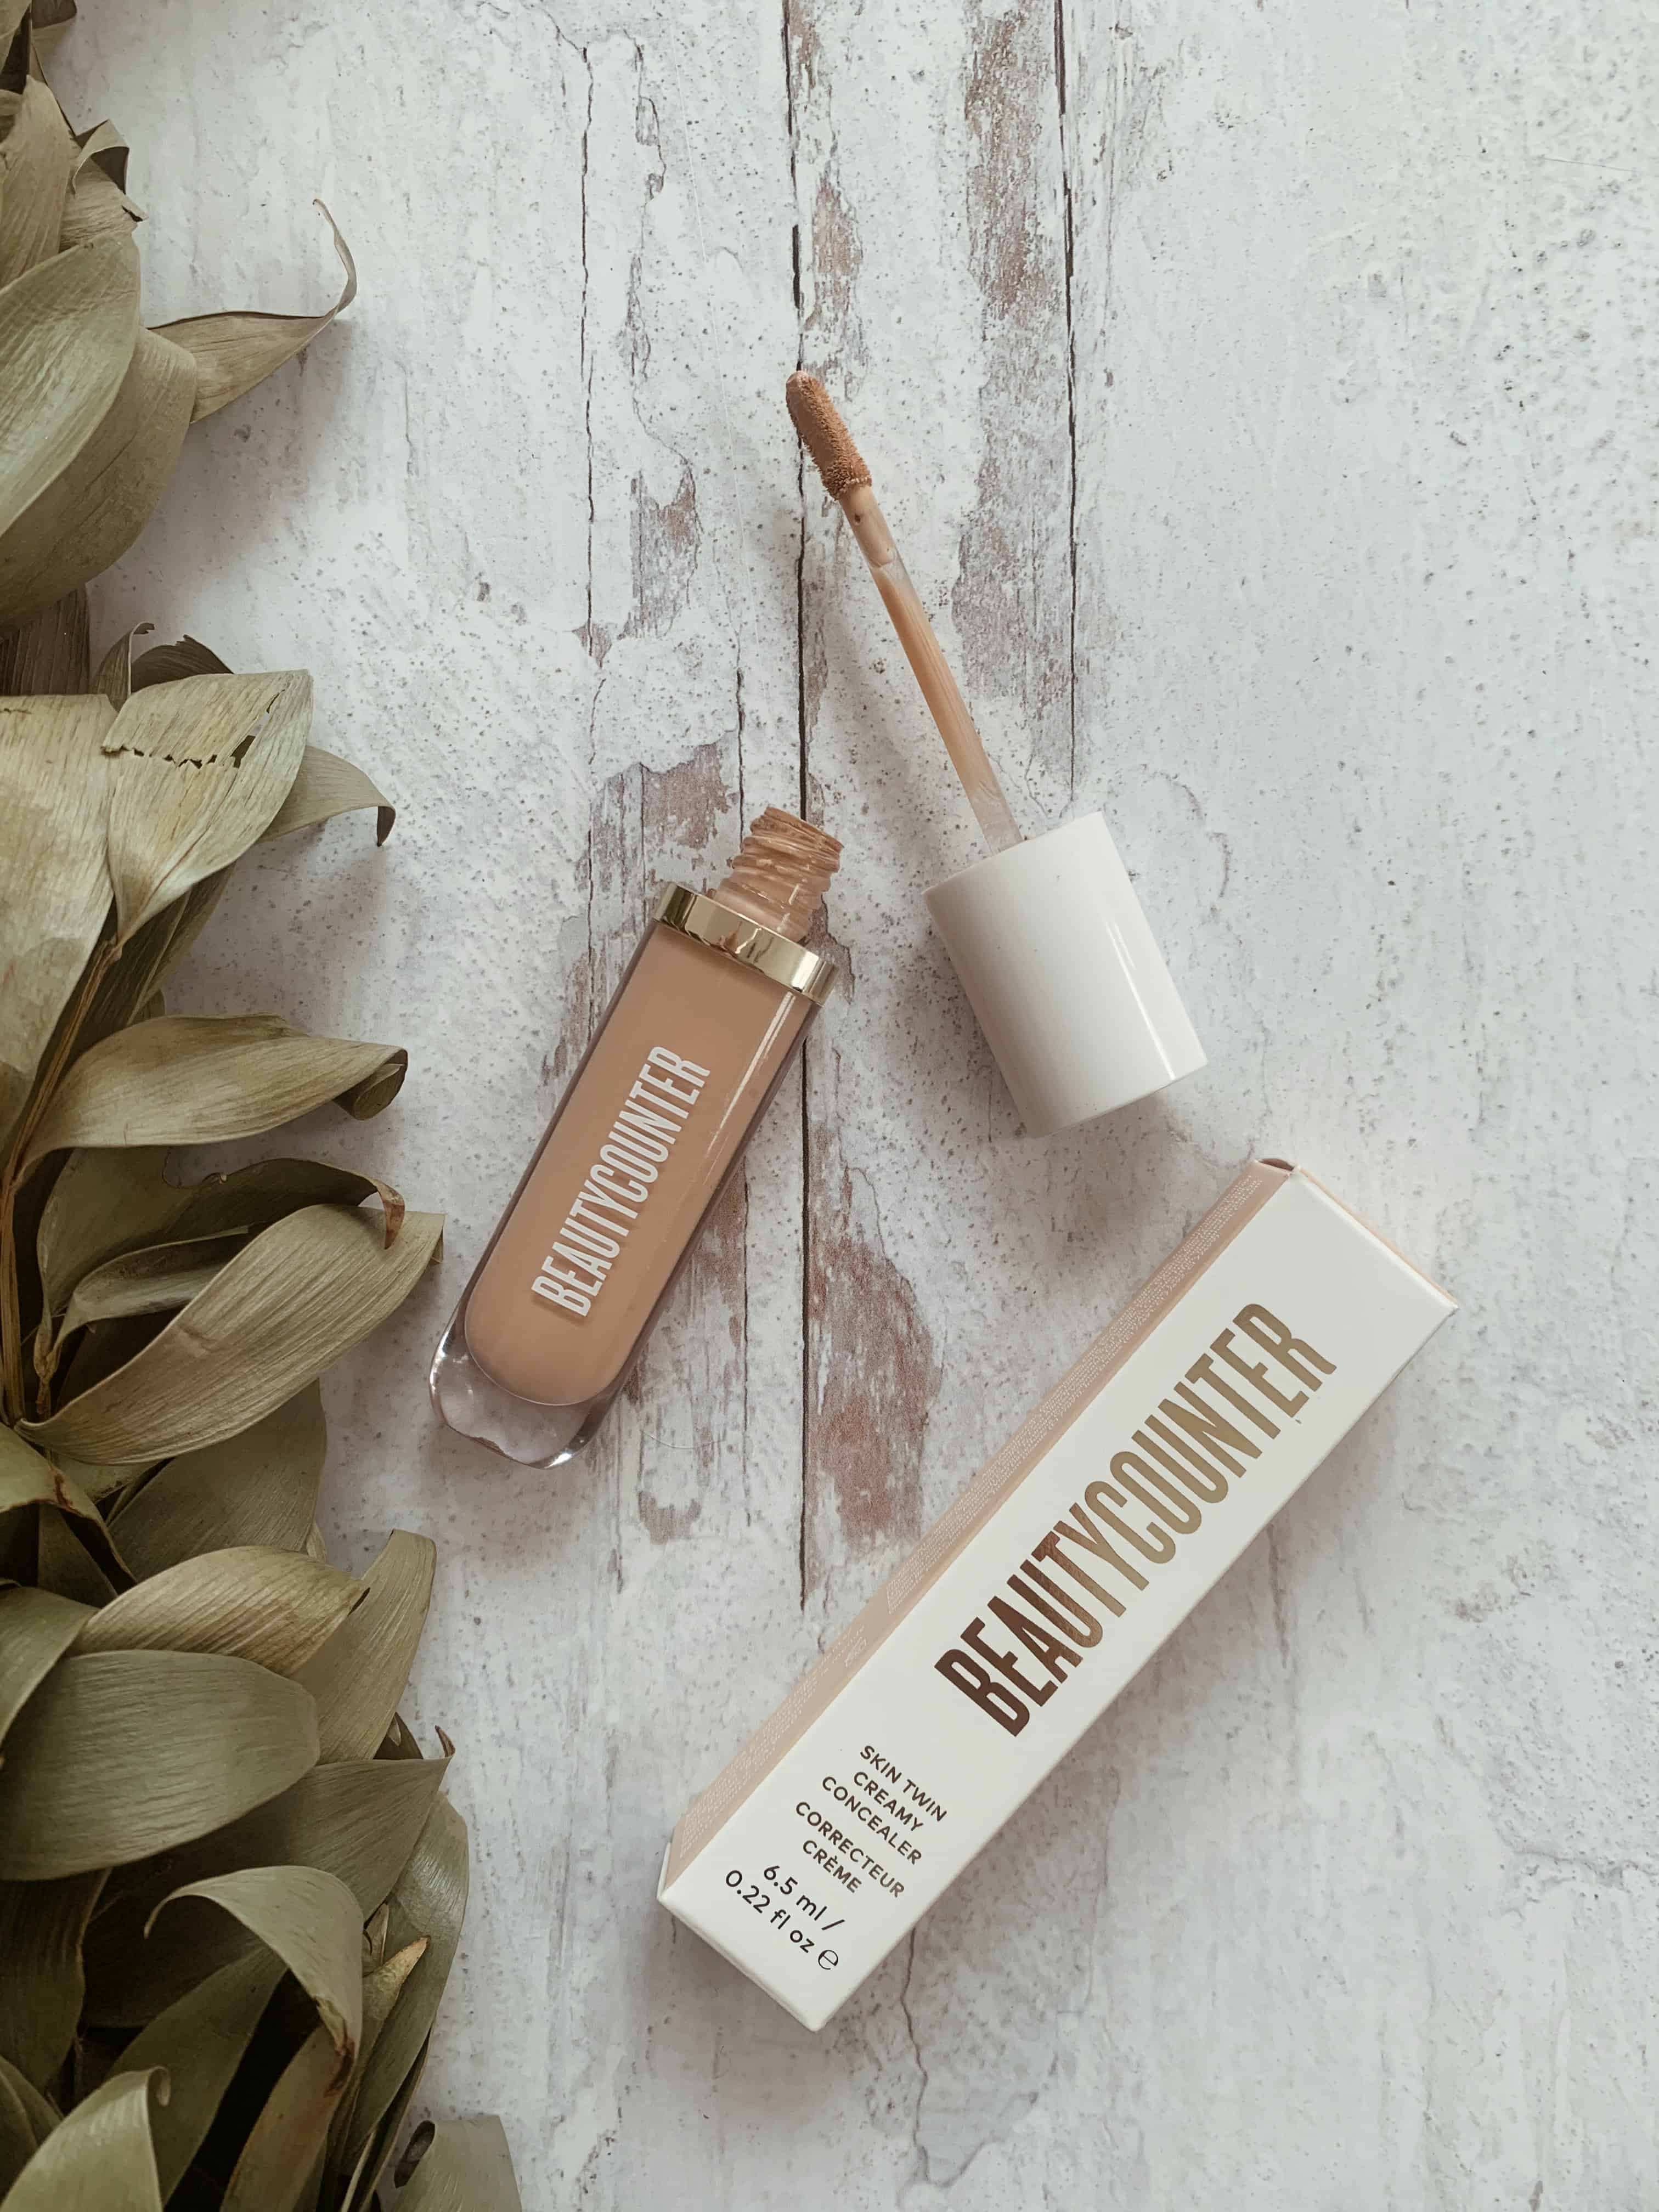 Beautycounter's New Skin Twin Creamy Concealer Review